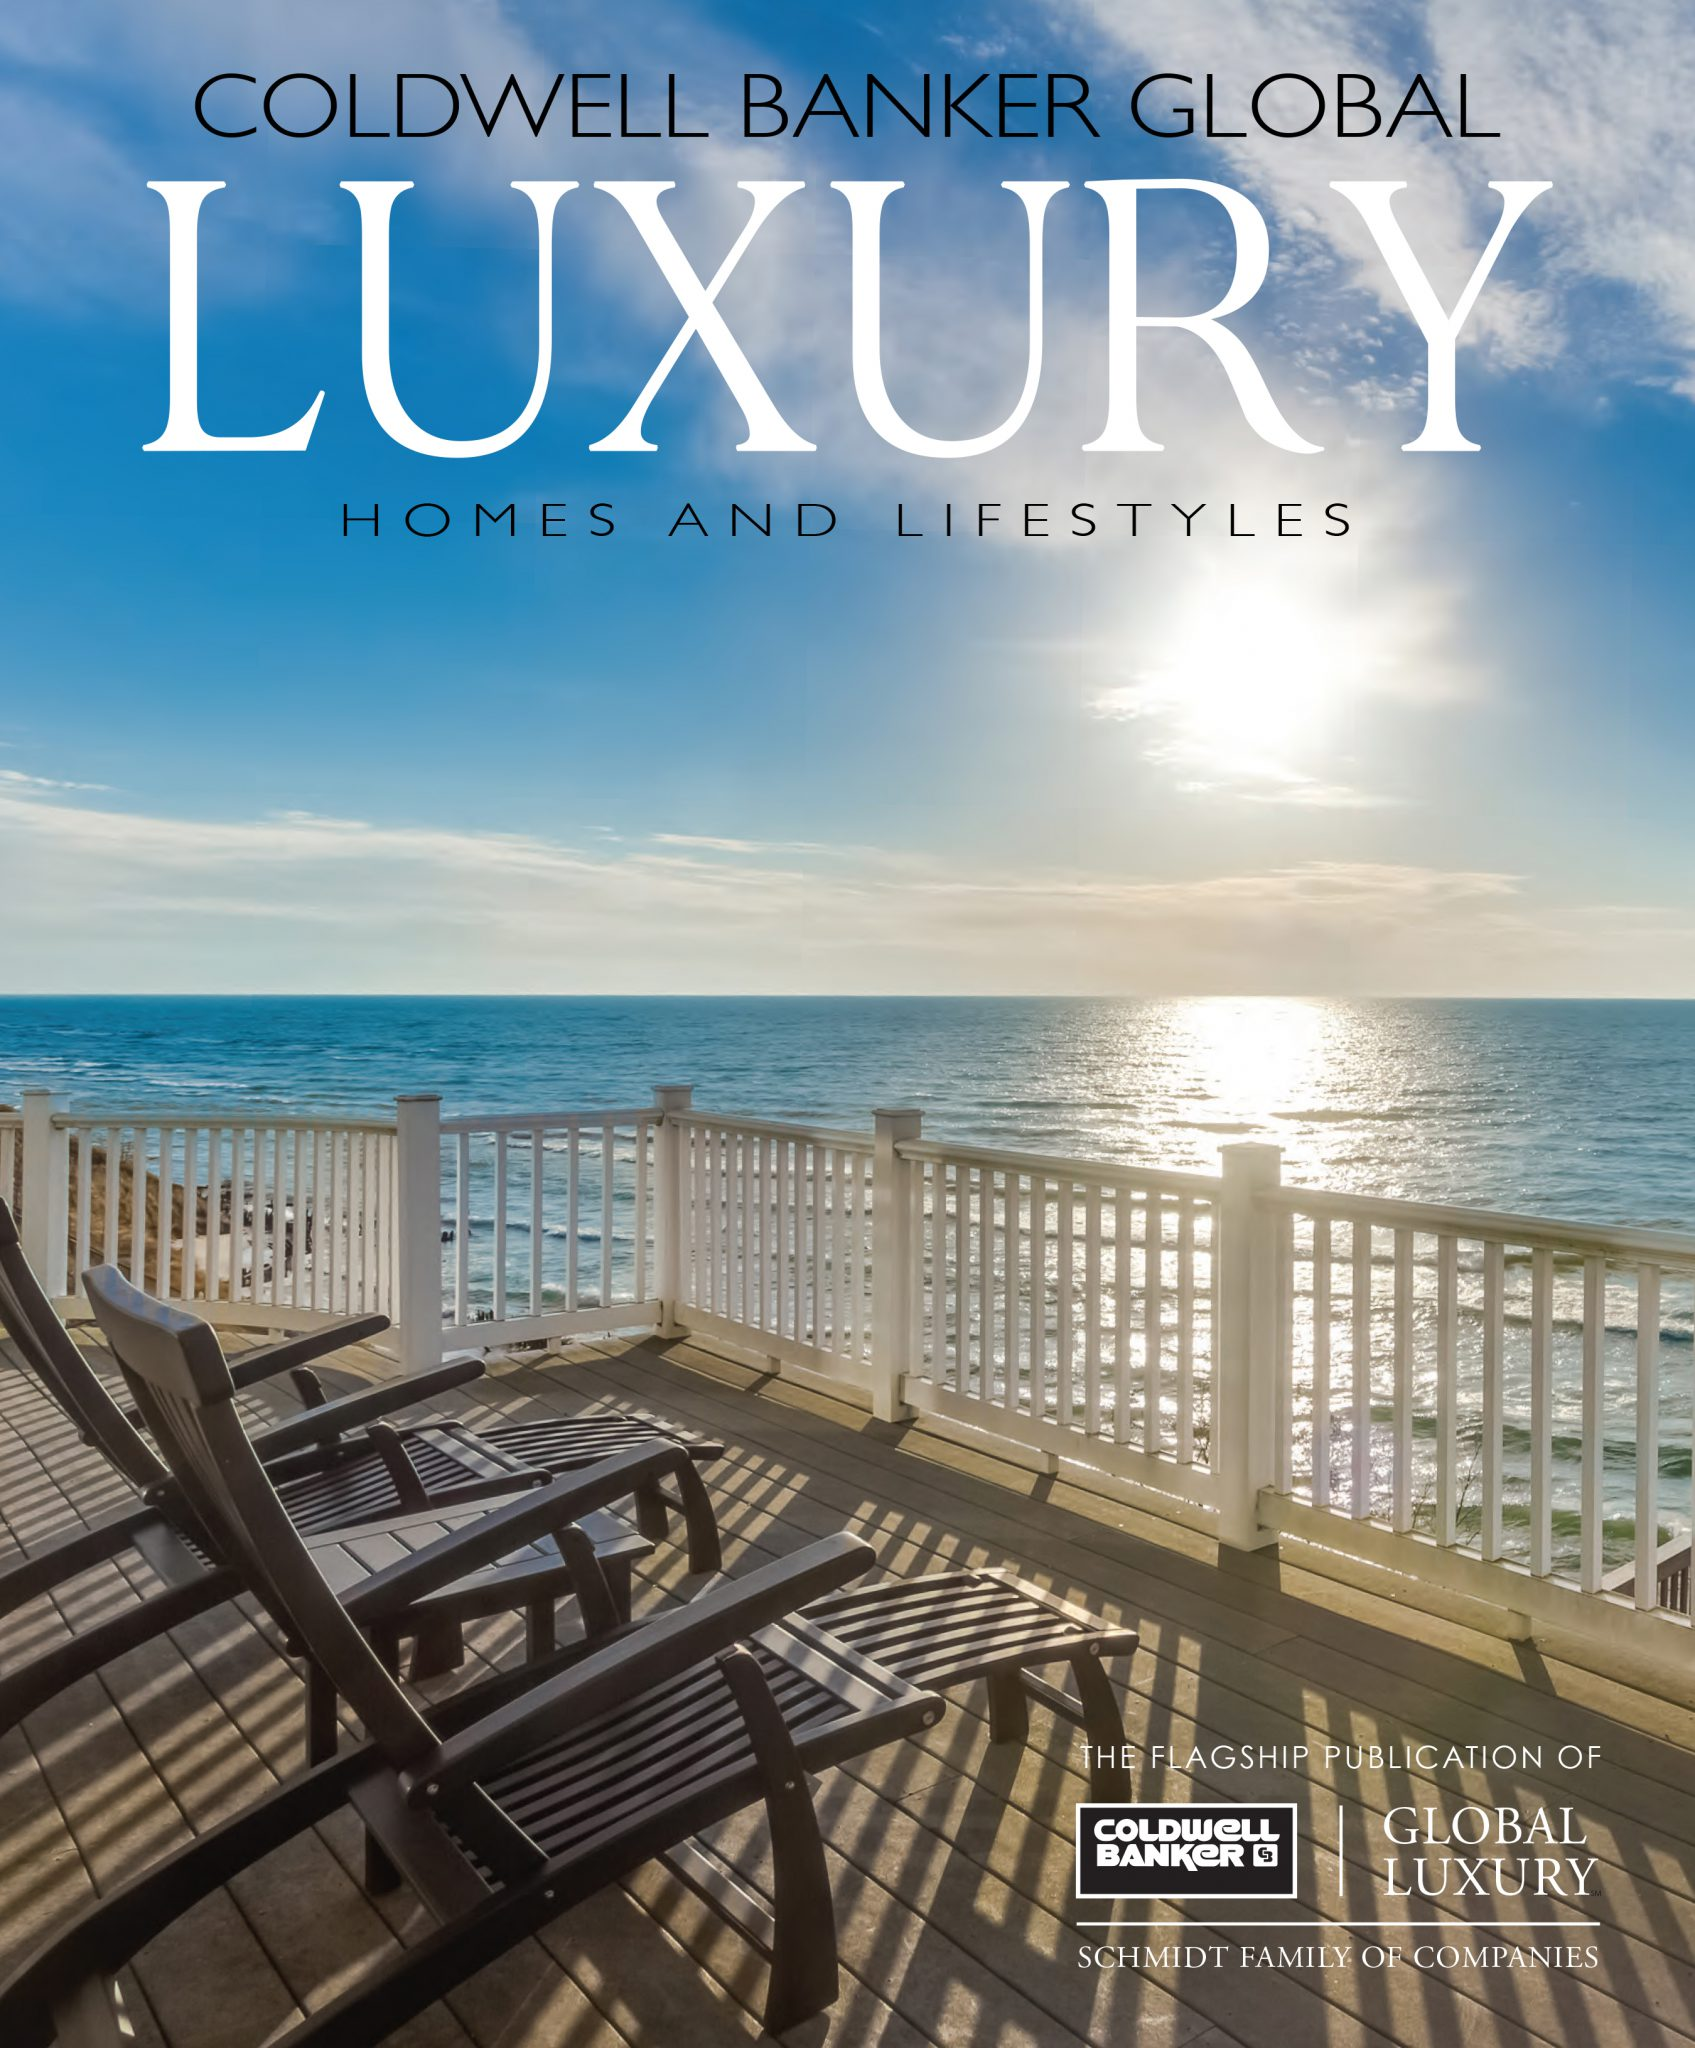 Cover of Coldwell Banker Global Luxury magazine.